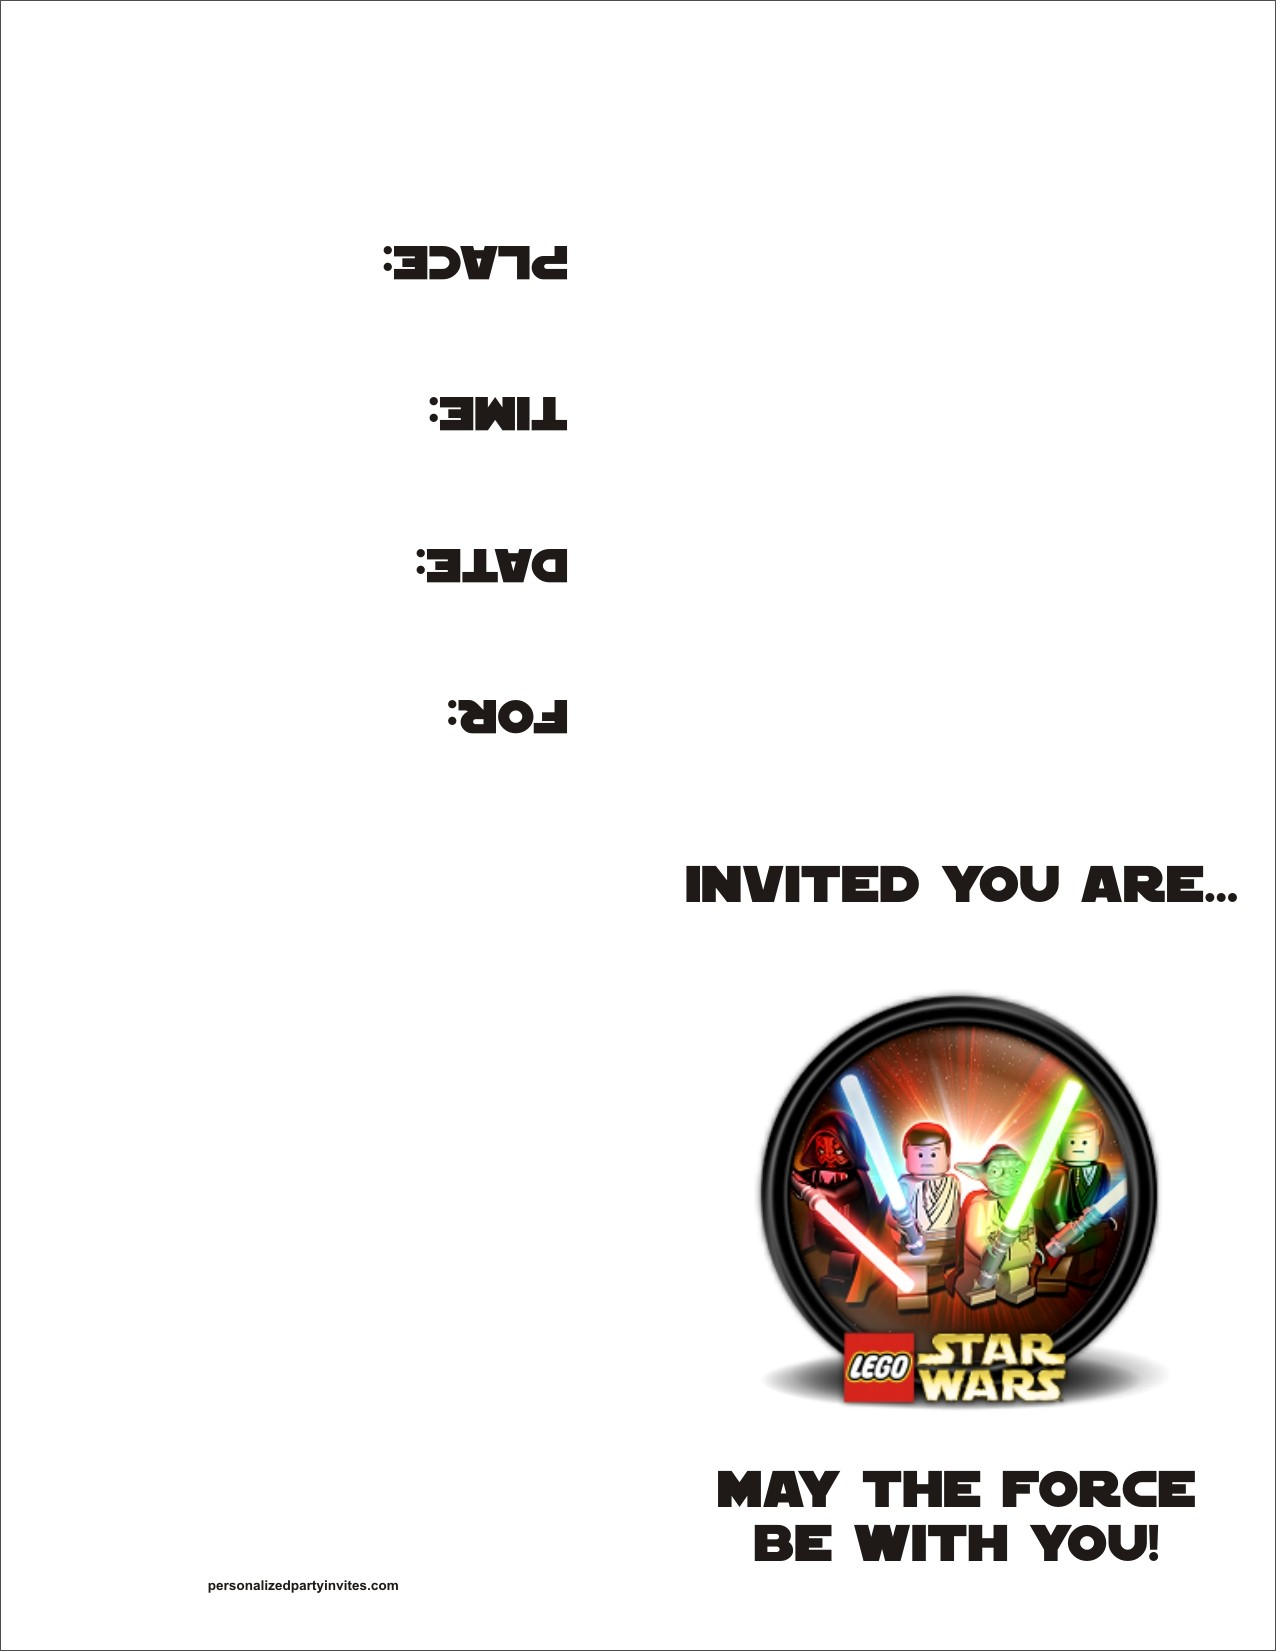 Lego star wars free printable birthday party invitation personalized lego star wars free printable birthday party invitation personalized party invites filmwisefo